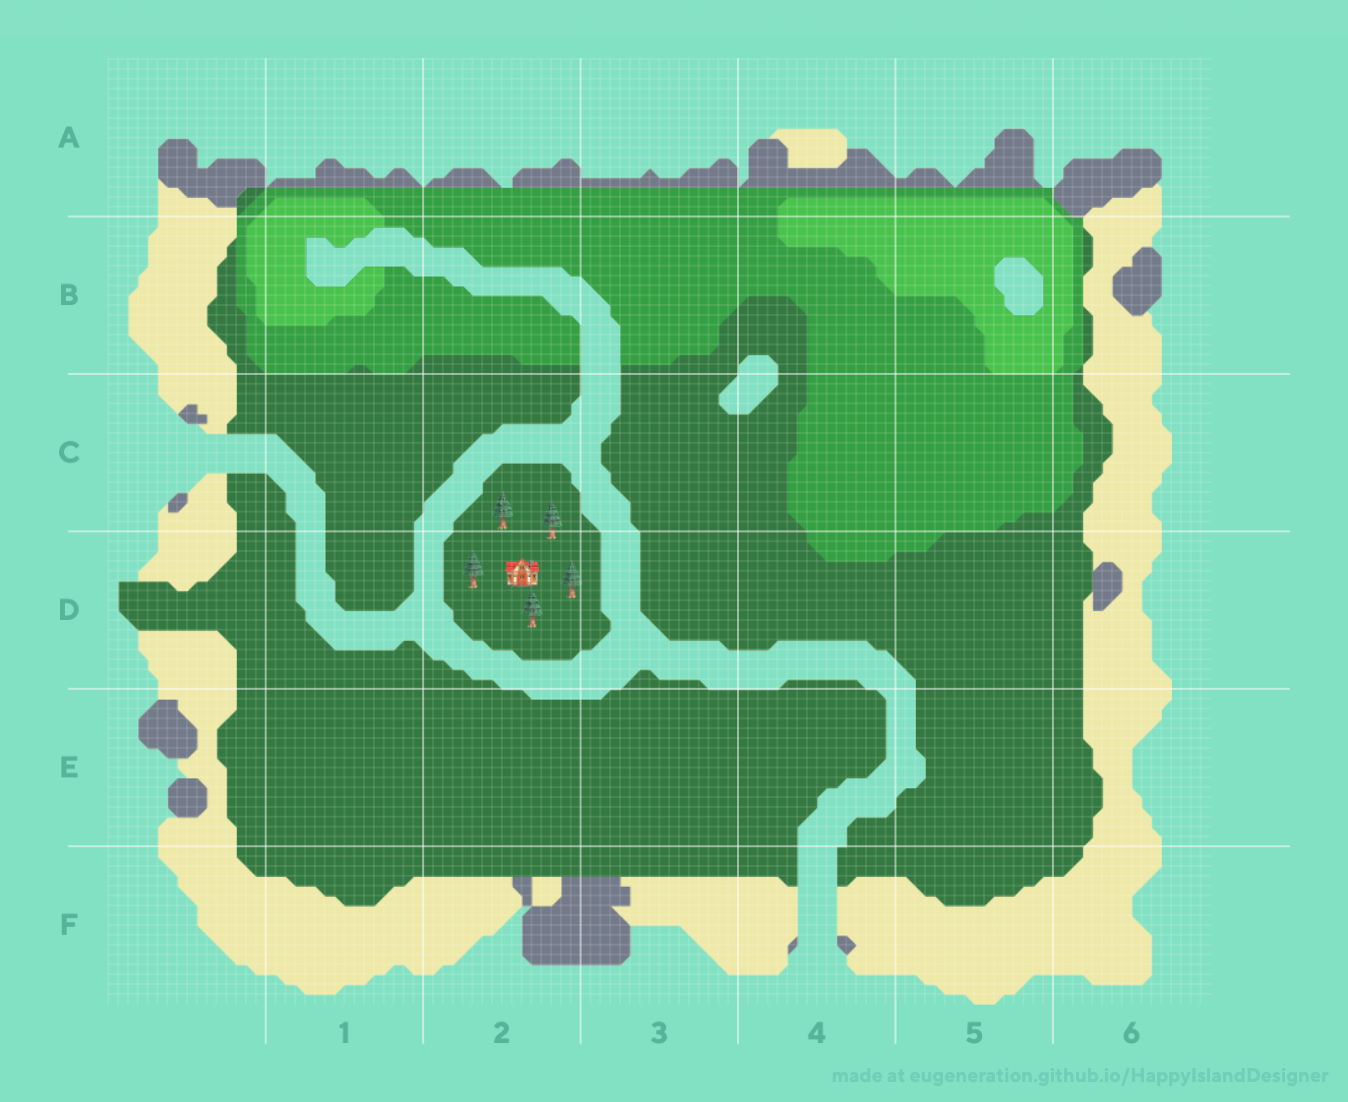 Island Within an Island Concept Made With Happy Island Designer